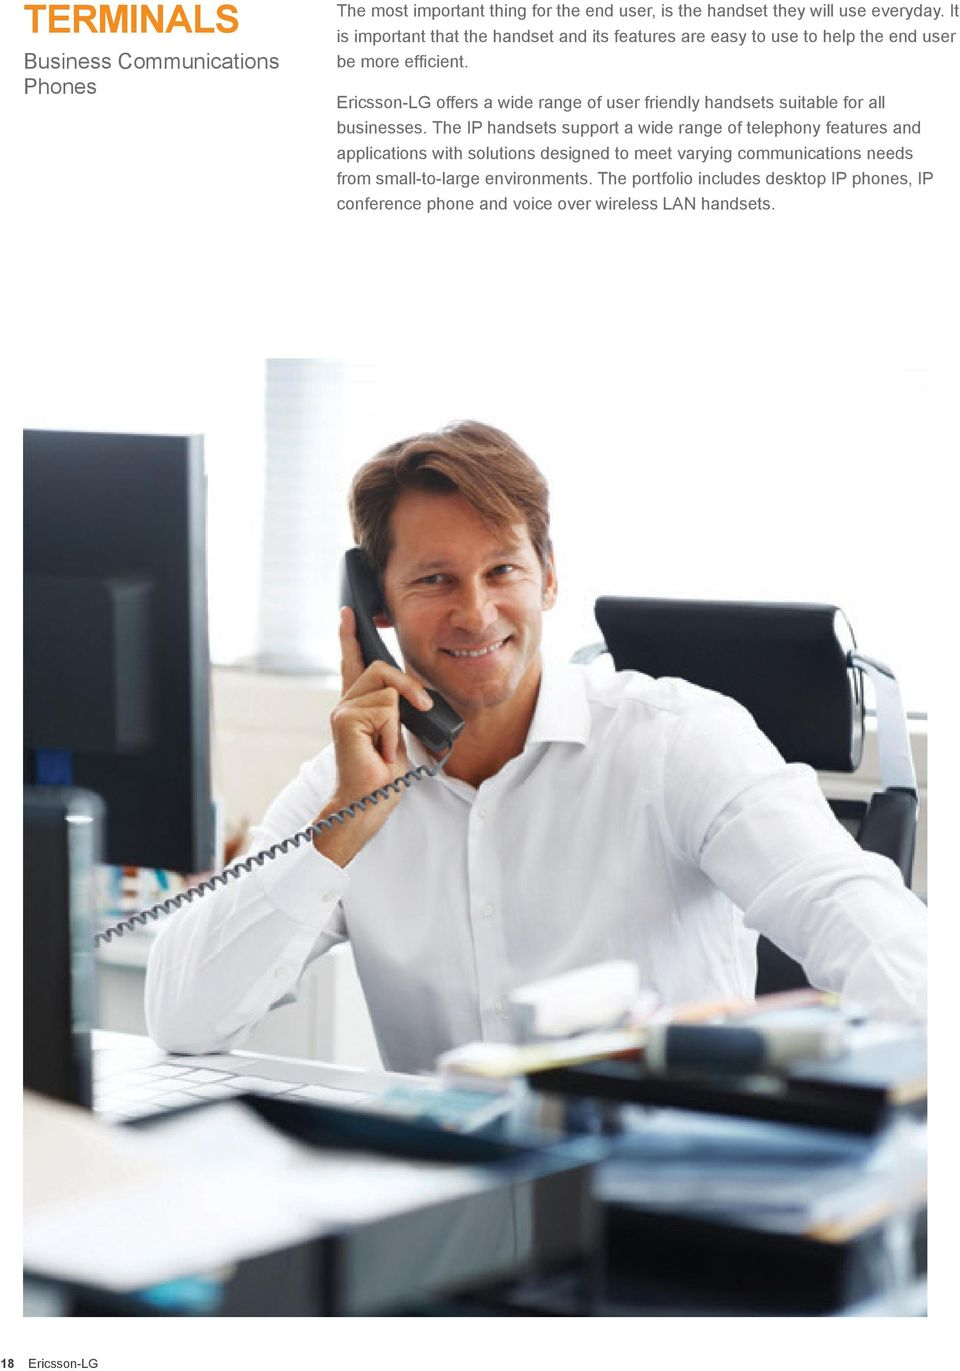 Ericsson-LG offers a wide range of user friendly handsets suitable for all businesses.